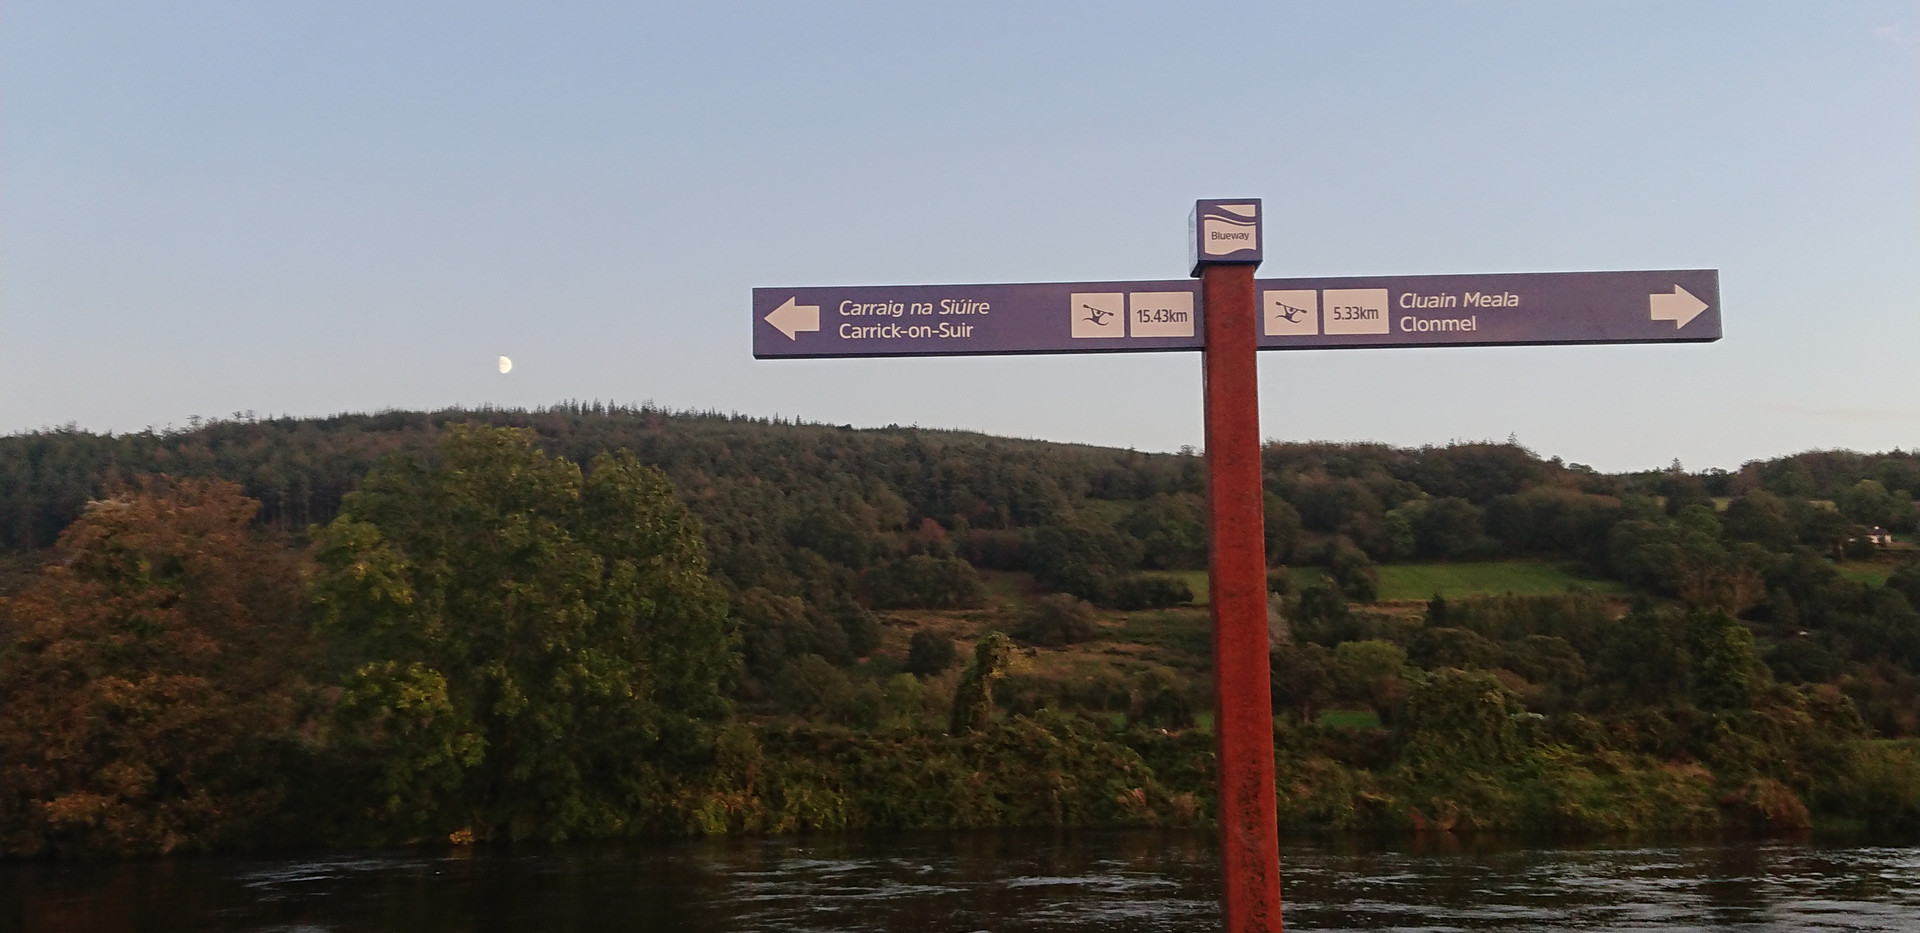 21km cycle/walk from Clonmel to Carrick on Suir